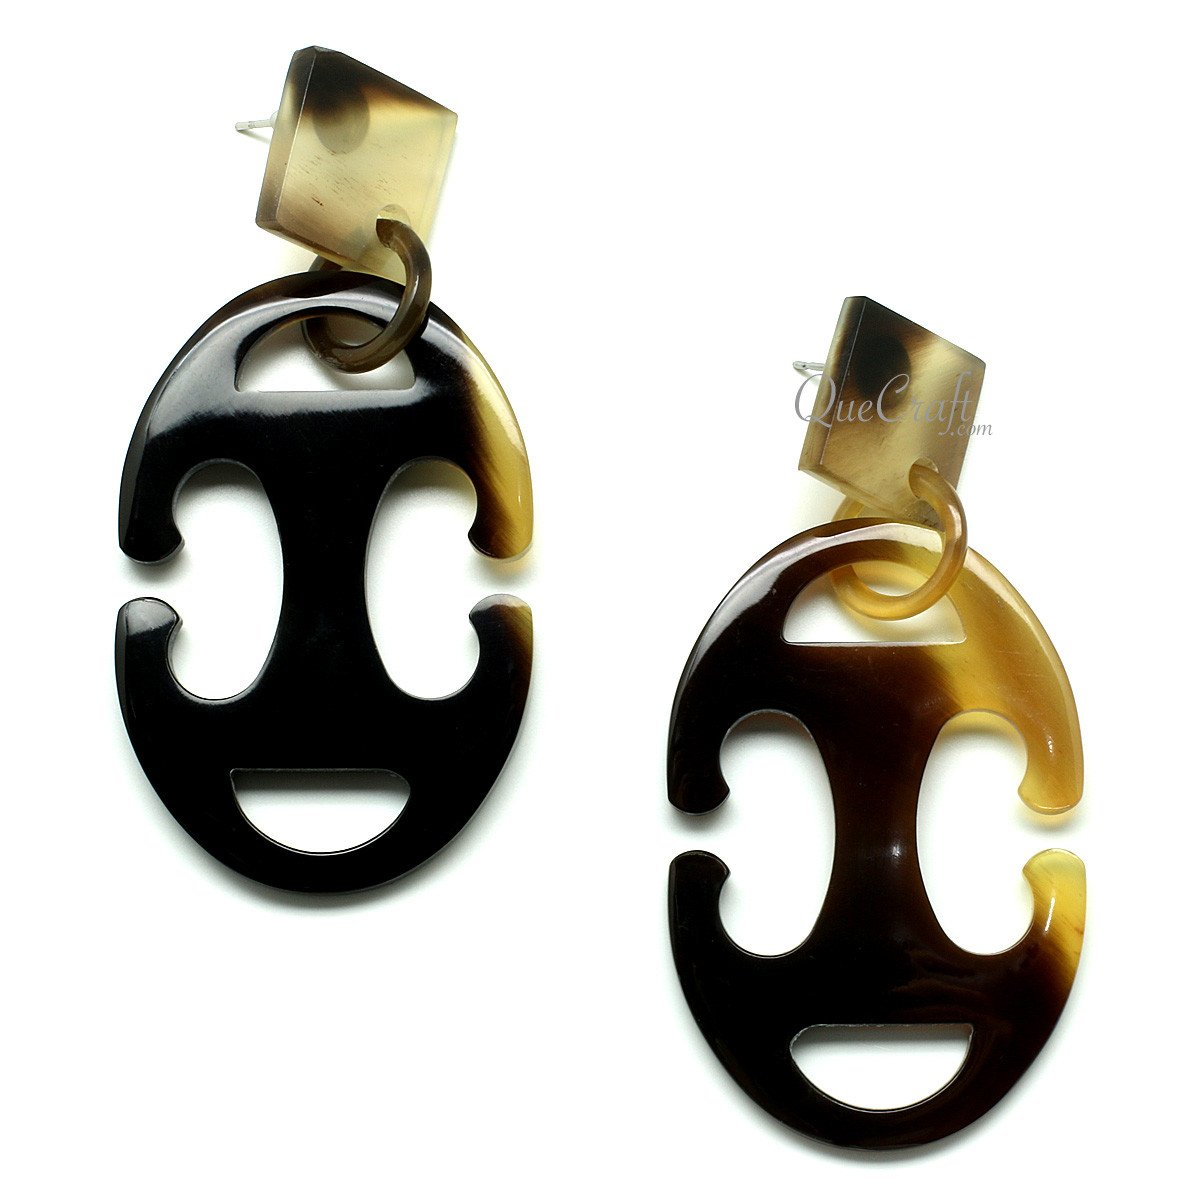 Horn Earrings #12008 - HORN.JEWELRY by QueCraft